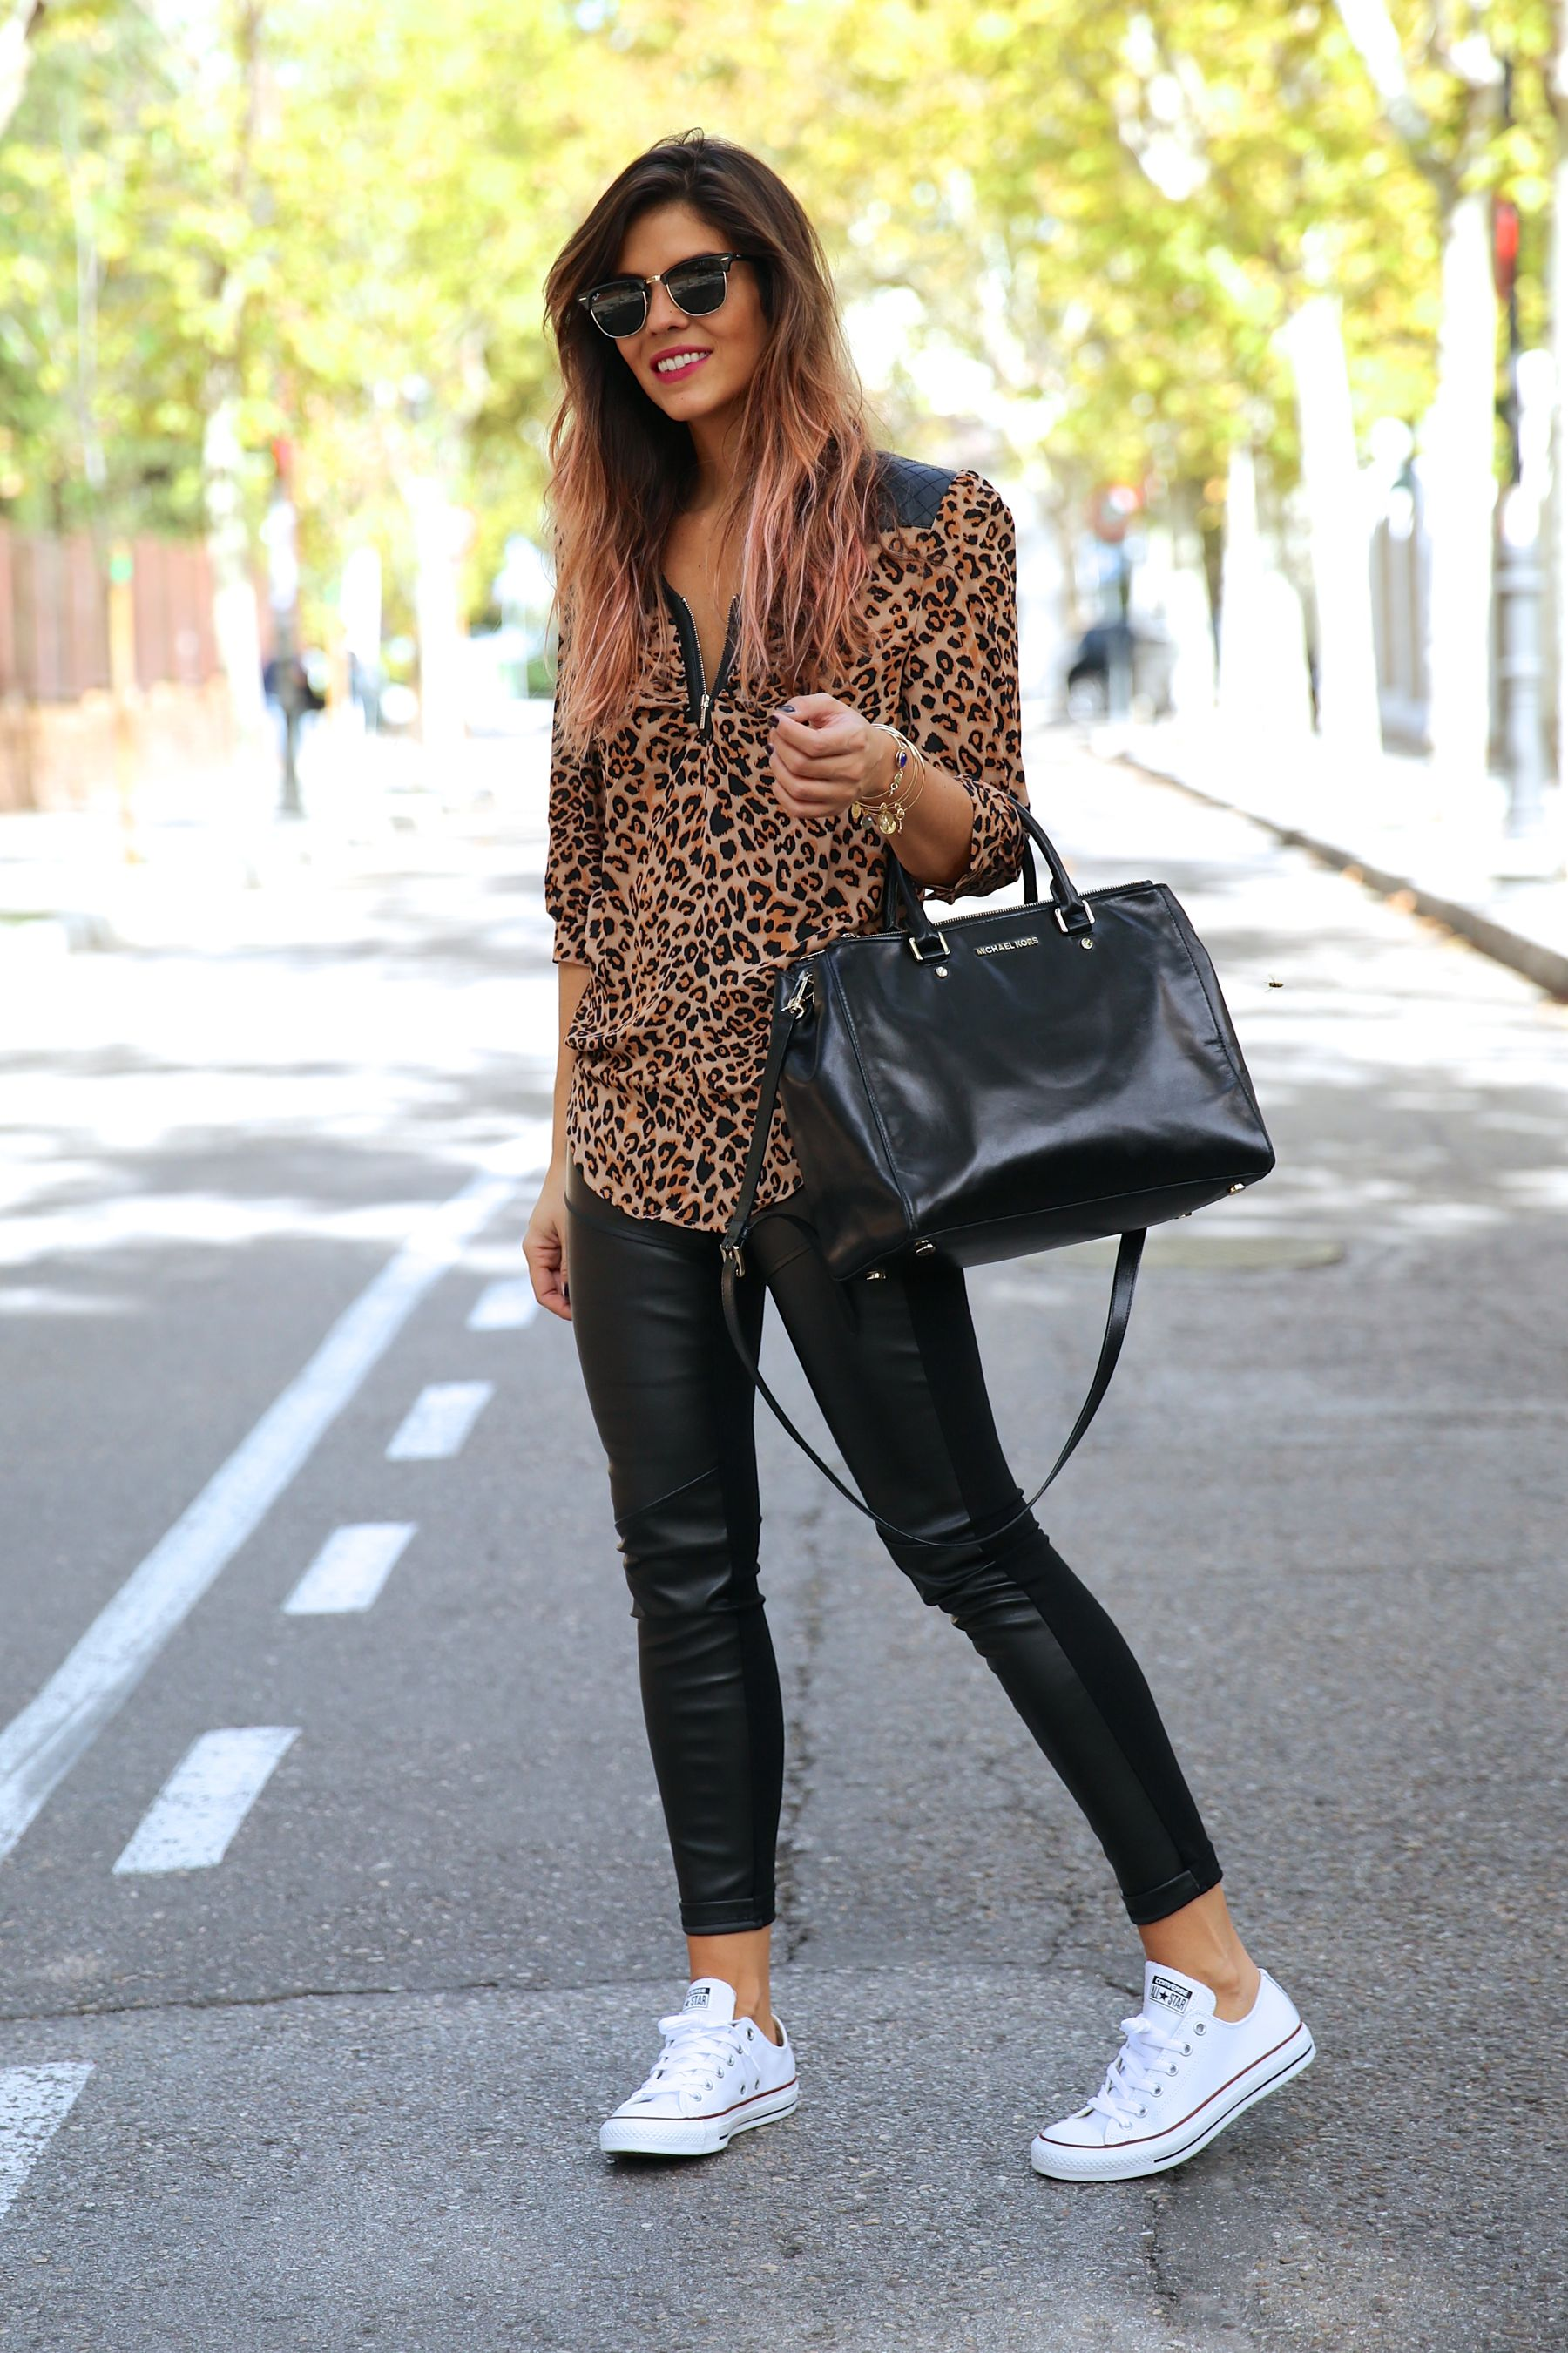 trendy_taste-look-outfit-street_style-ootd-blog-blogger-fashion_spain-moda_españa-leo_print-leopardo-converse-all_star-michael_kors-leggings-clubmaster-12